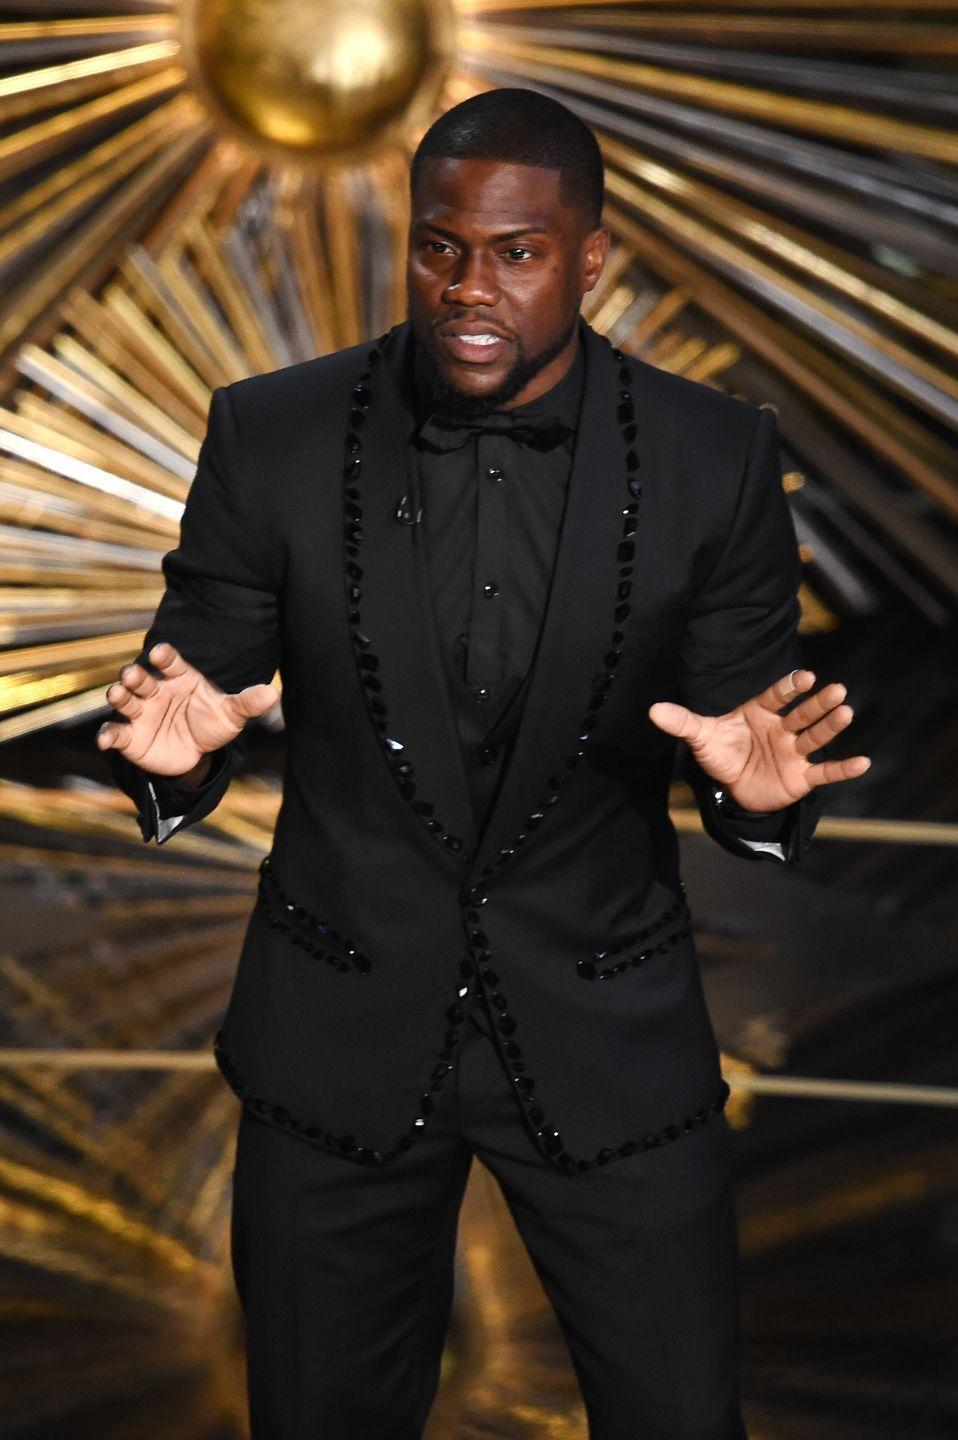 """<p>Comedian Kevin Hart was named host of the 91st annual award show on December 4, 2018. Just two days later, however, a handful of homophobic tweets that Kevin had shared in the late 2000s were resurfaced, and the Academy demanded that he apologize for his past hurtful words. Although he declined to say """"sorry"""" at first, Kevin ultimately ended up issuing a formal apology and <a href=""""https://www.cosmopolitan.com/entertainment/a25799856/kevin-hart-oscars-controversy-explained/"""" rel=""""nofollow noopener"""" target=""""_blank"""" data-ylk=""""slk:stepping down from the hosting gig"""" class=""""link rapid-noclick-resp"""">stepping down from the hosting gig</a> altogether. No one was chosen to replace him, and the 2019 Oscars went host-less. </p><p><strong>RELATED: </strong><a href=""""https://www.goodhousekeeping.com/life/entertainment/g26343721/oscars-host-controversial/"""" rel=""""nofollow noopener"""" target=""""_blank"""" data-ylk=""""slk:The Most Controversial Oscars Hosts From the Last 10 Years"""" class=""""link rapid-noclick-resp"""">The Most Controversial Oscars Hosts From the Last 10 Years</a></p>"""